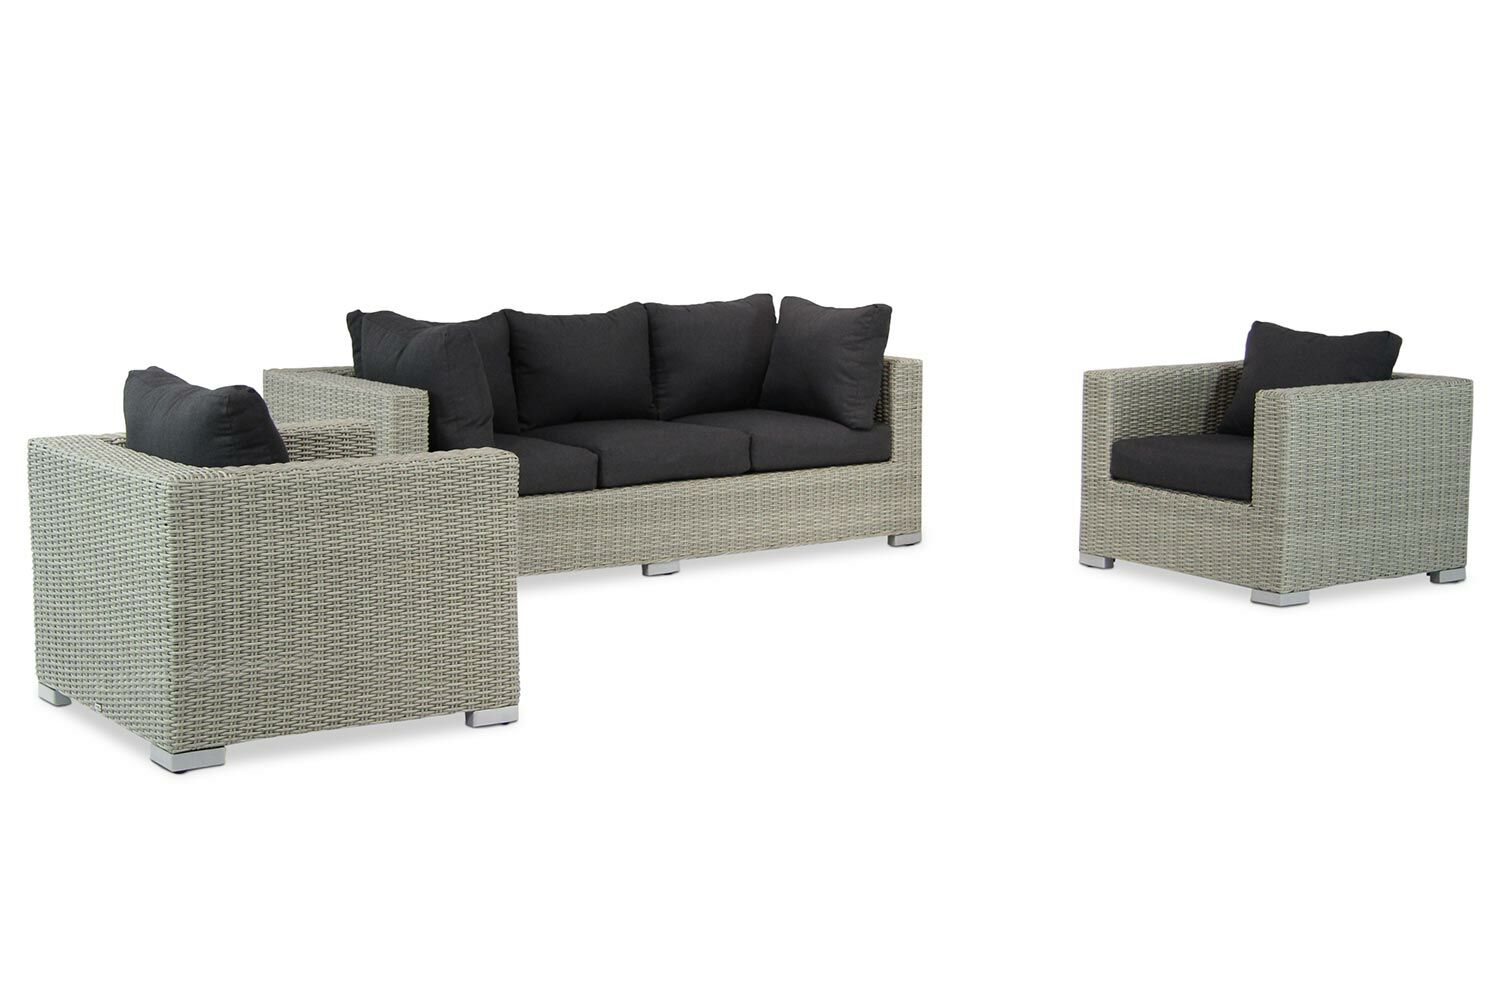 2 Stoelen En Een Bank.Garden Collections Toronto Stoel Bank Loungeset 4 Delig